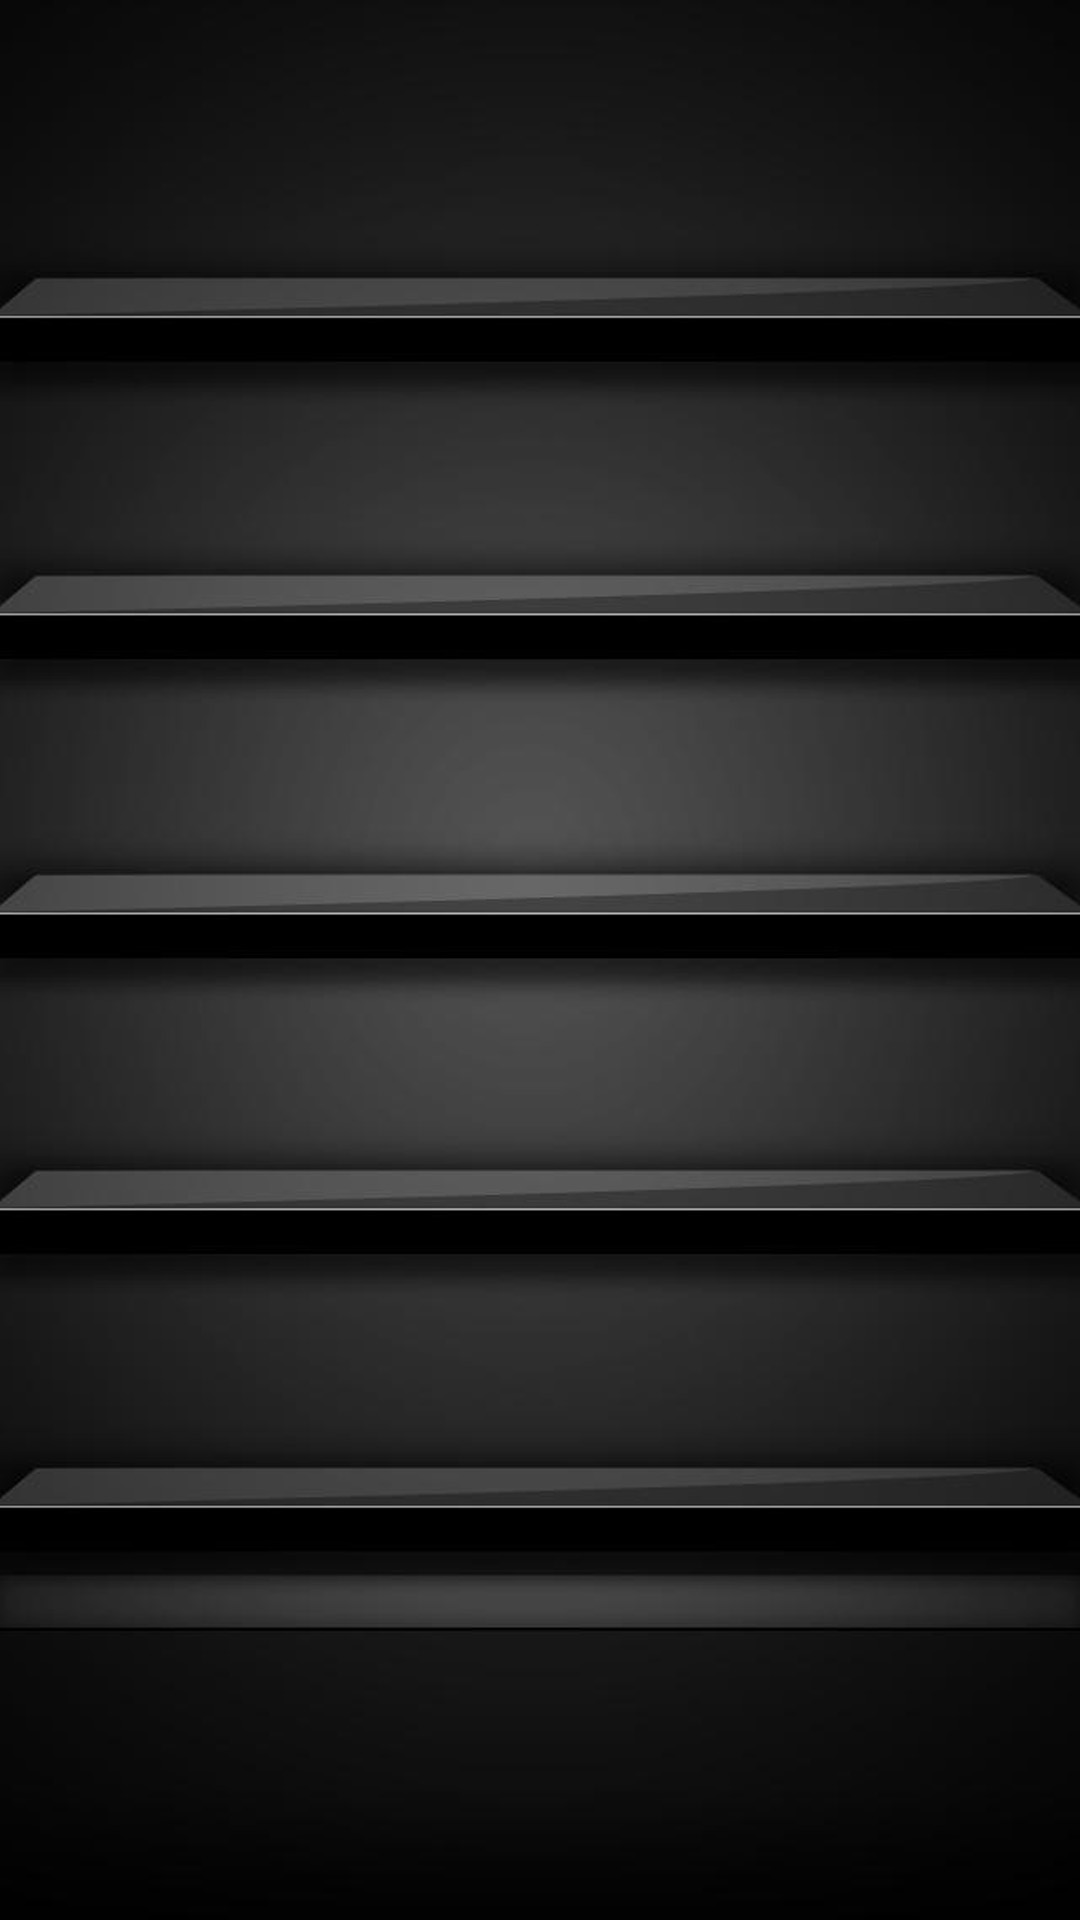 Shelf iPhone 6 Plus Wallpaper 67 iPhone 6 Plus Wallpapers HD 1080x1920